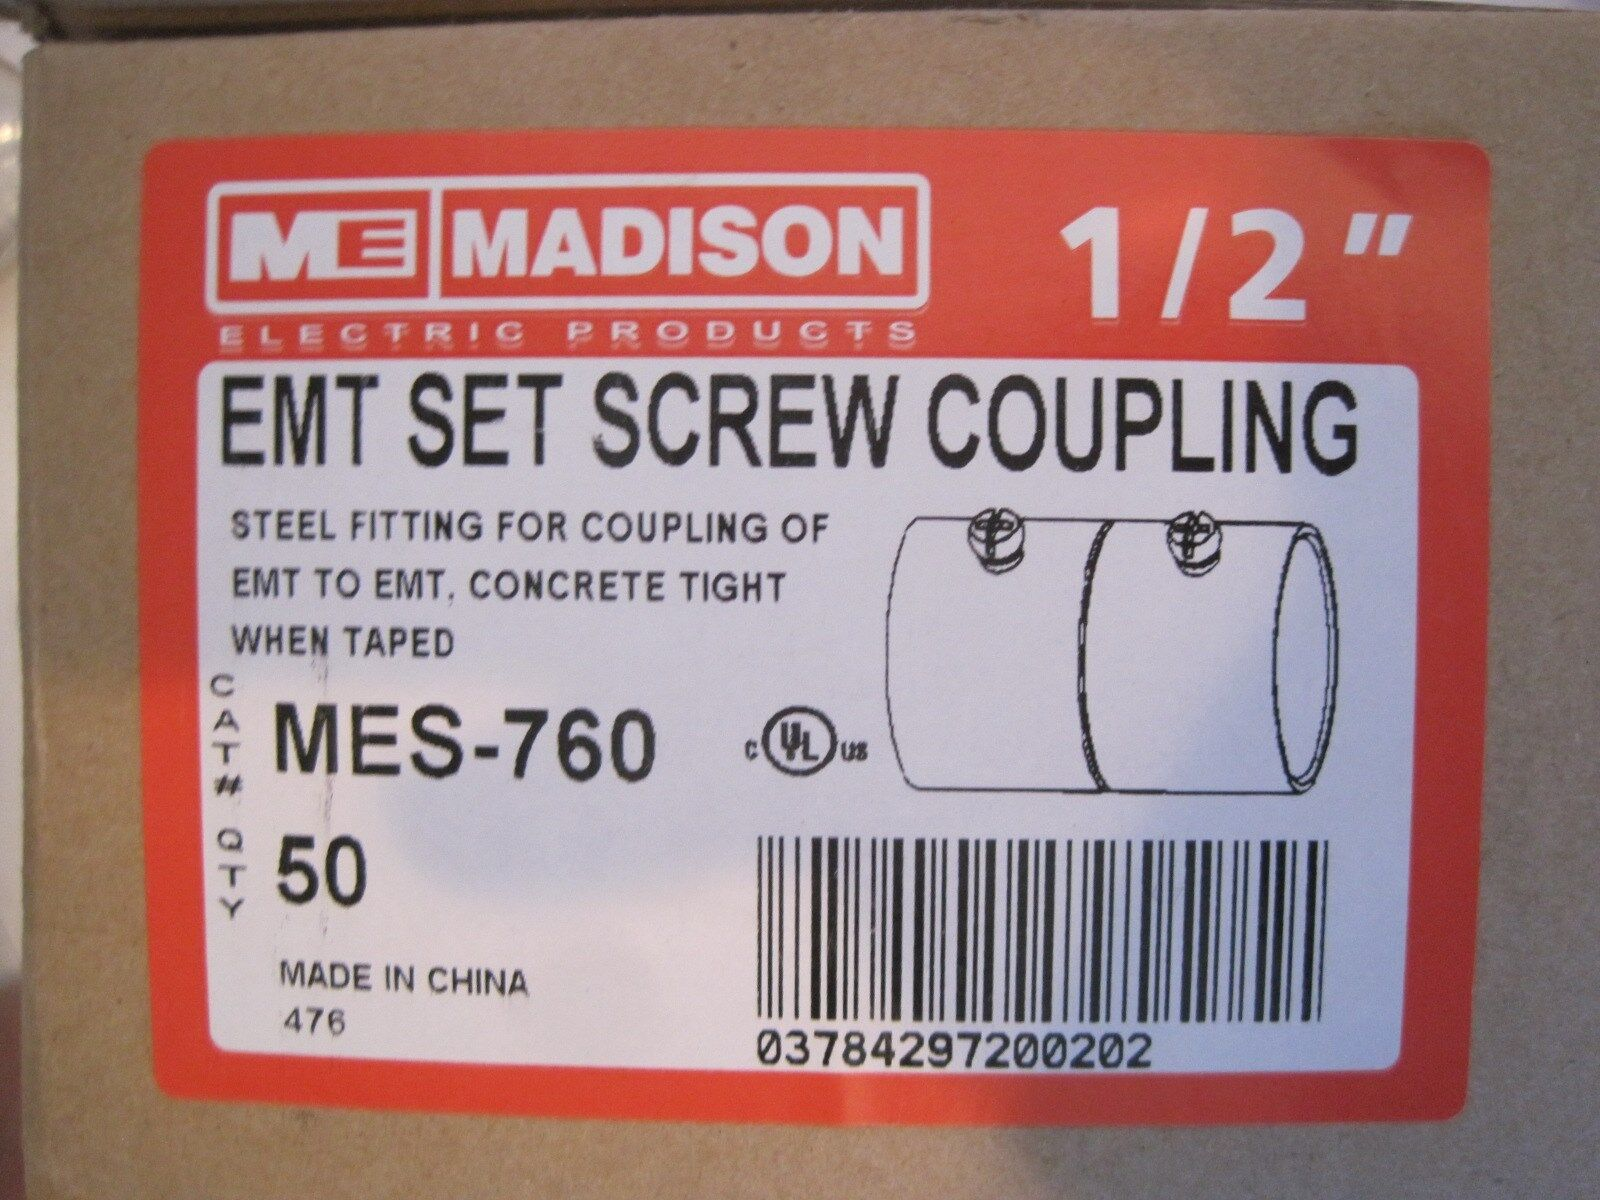 50 NEW MADISON ELECTRIC MES-760 1 2  SET SCREW COUPLING MES760